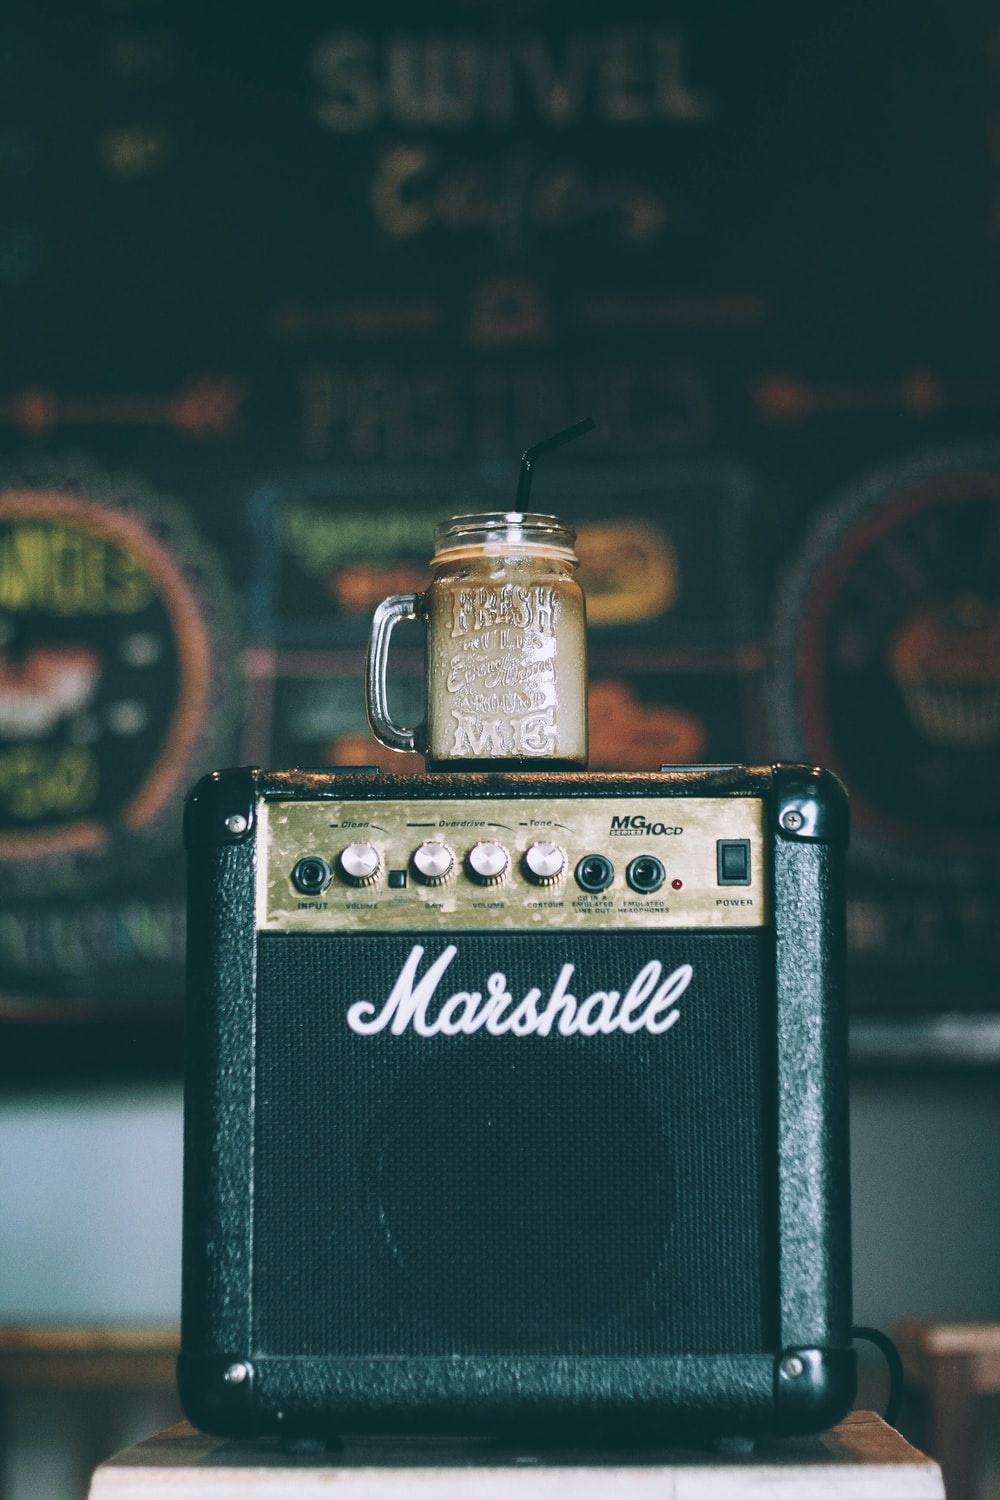 black Marshall guitar amplifier with glass mug on top filled with beverage